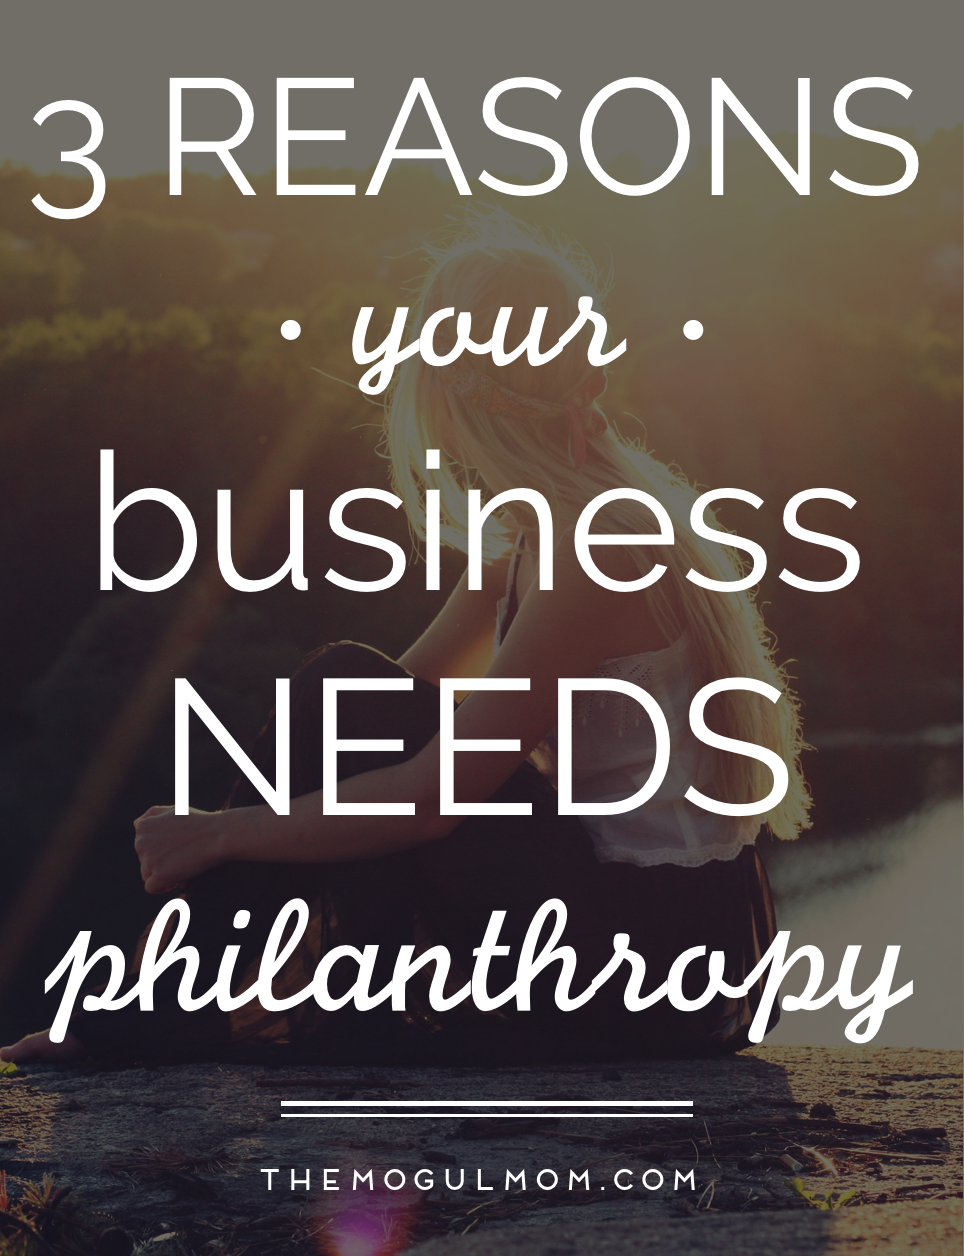 3 Reasons Why Your Business Needs Philanthropy